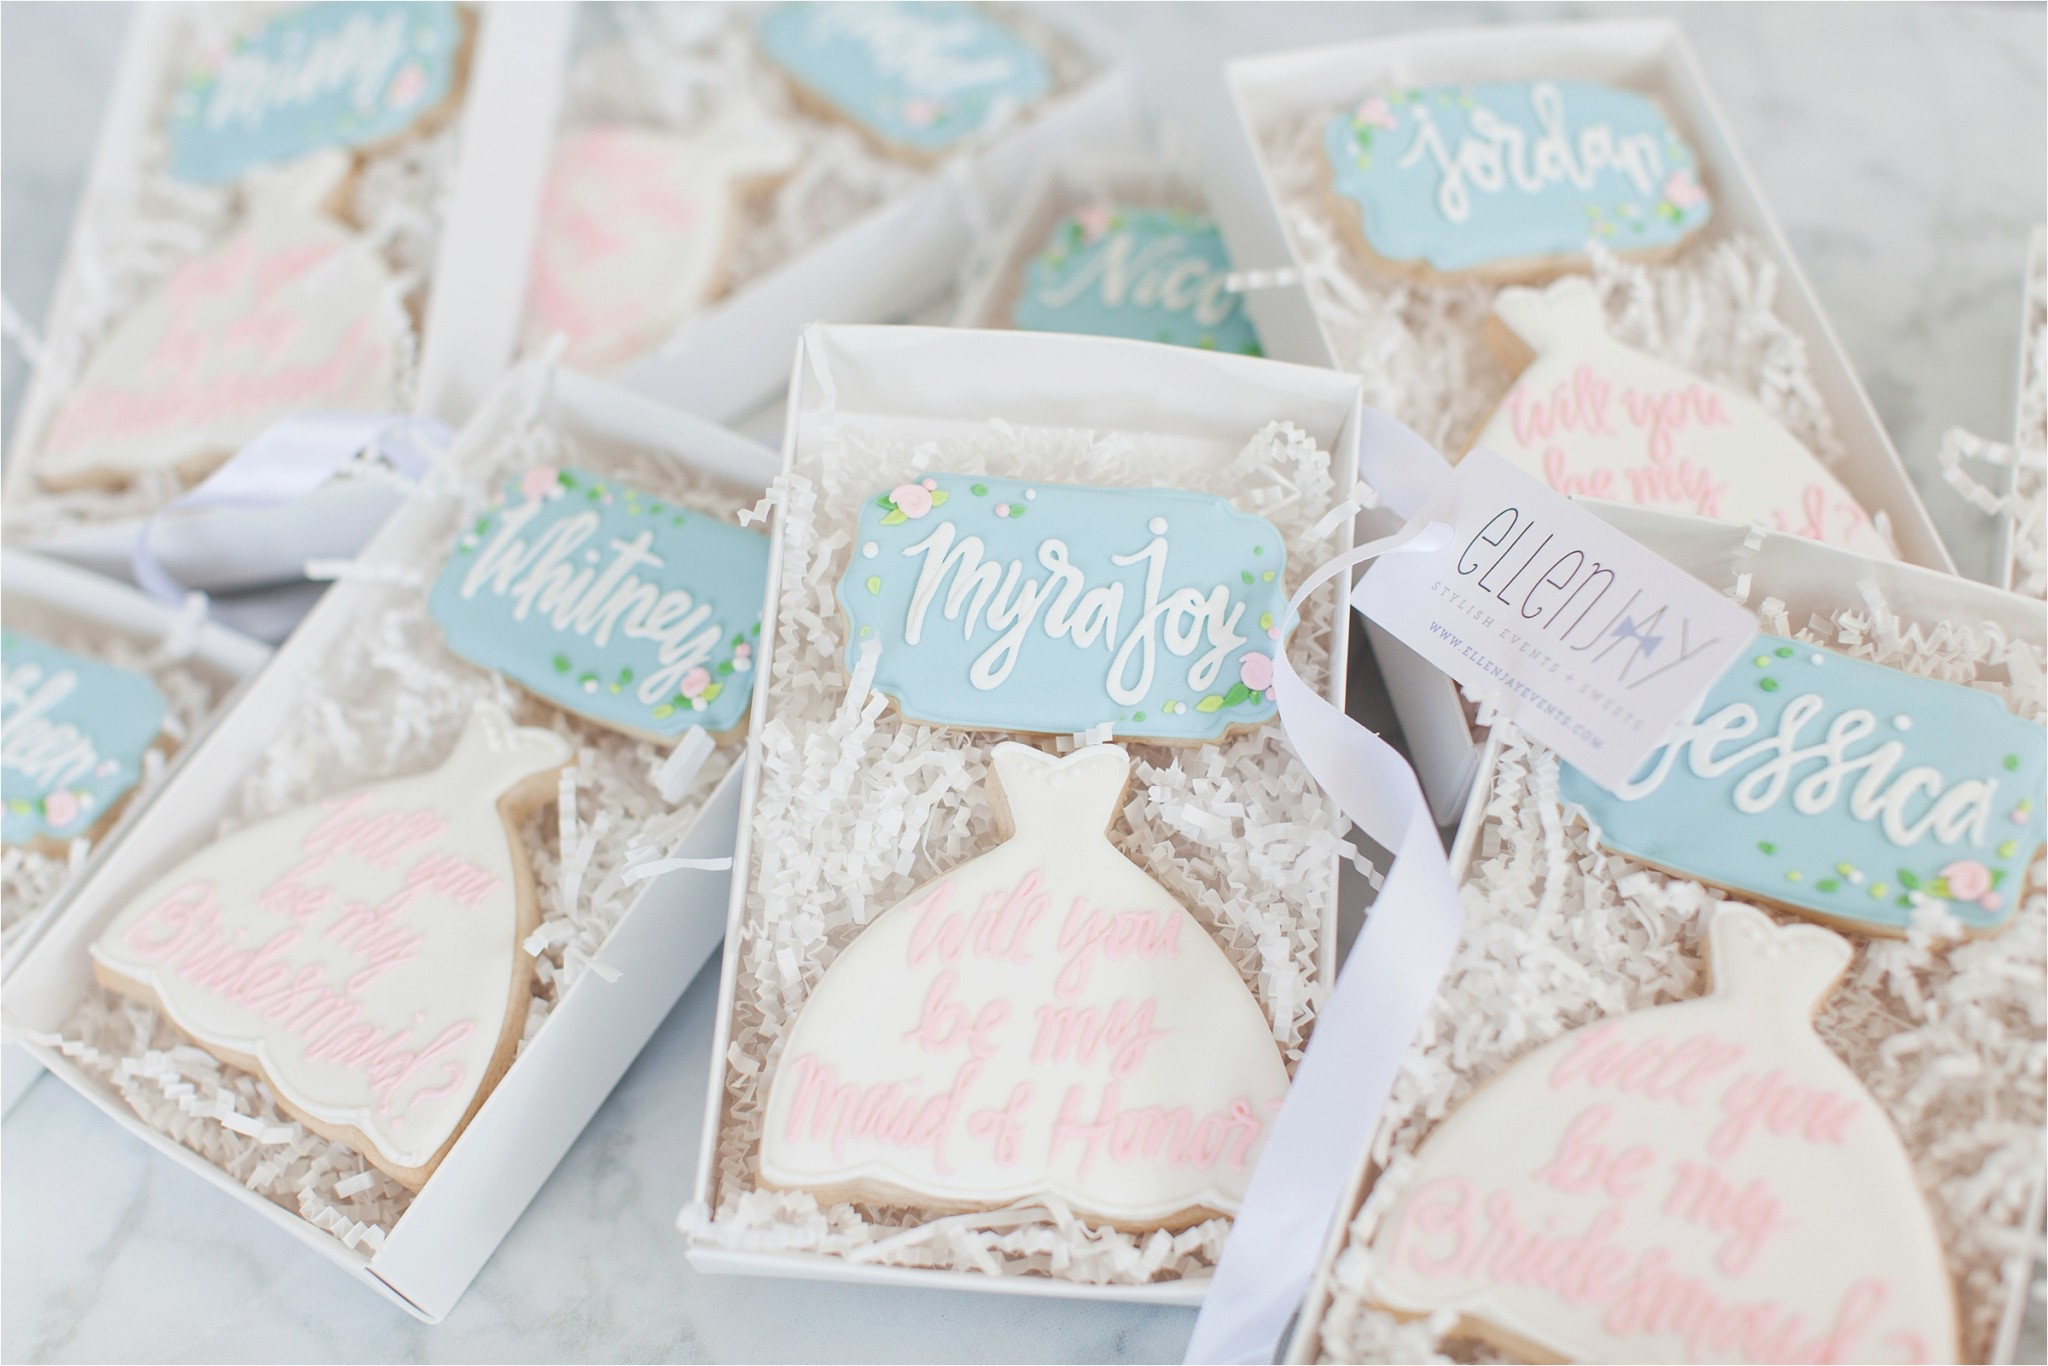 Sugar cookies from ellenjay events